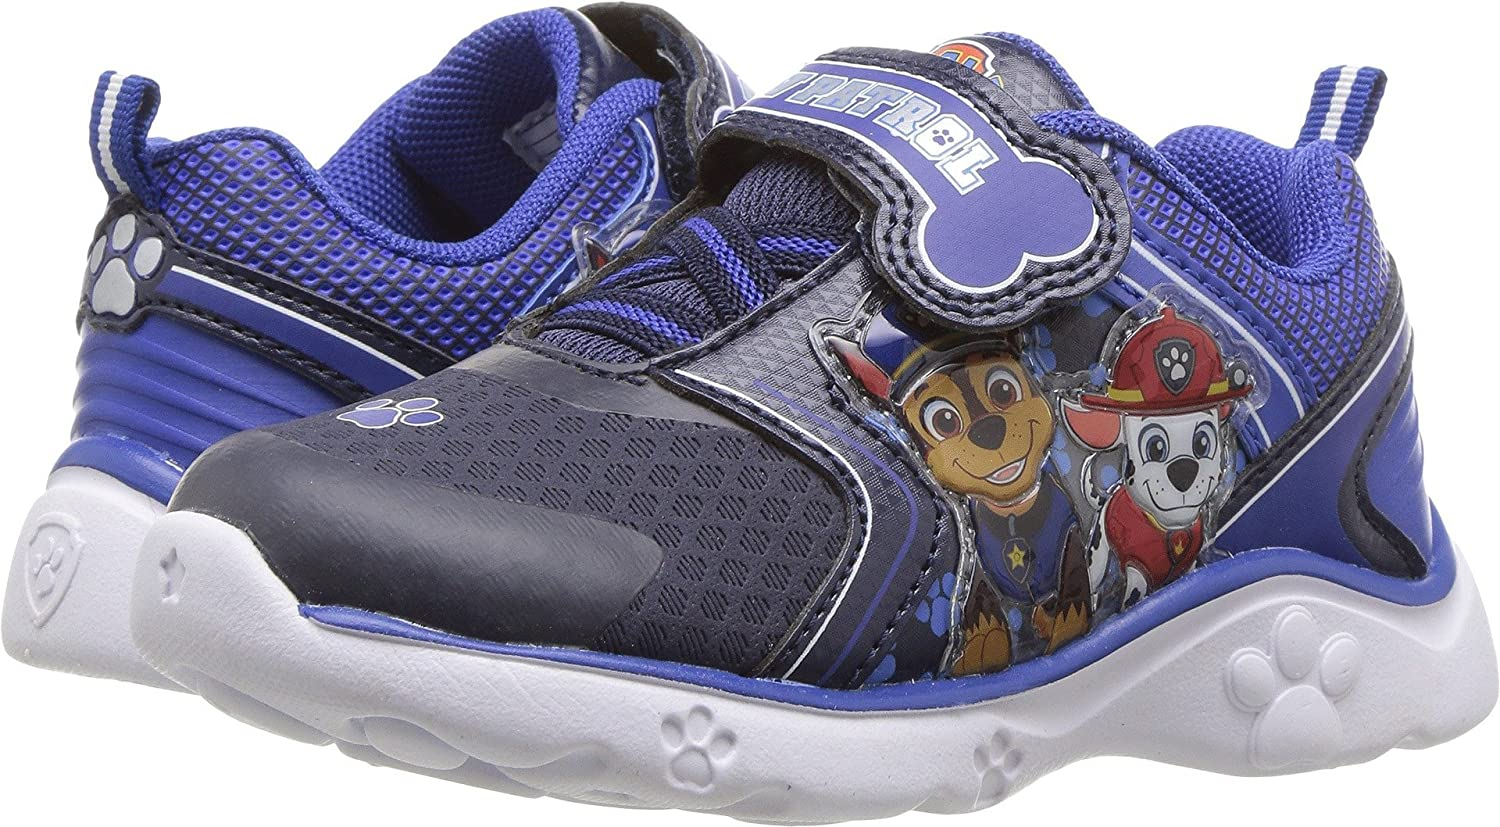 Josmo Boys Light up Paw Patrol Athletic Shoes (Toddler/Little Kid) Navy/Blue (11 M US Little Kid) Josmo Kids